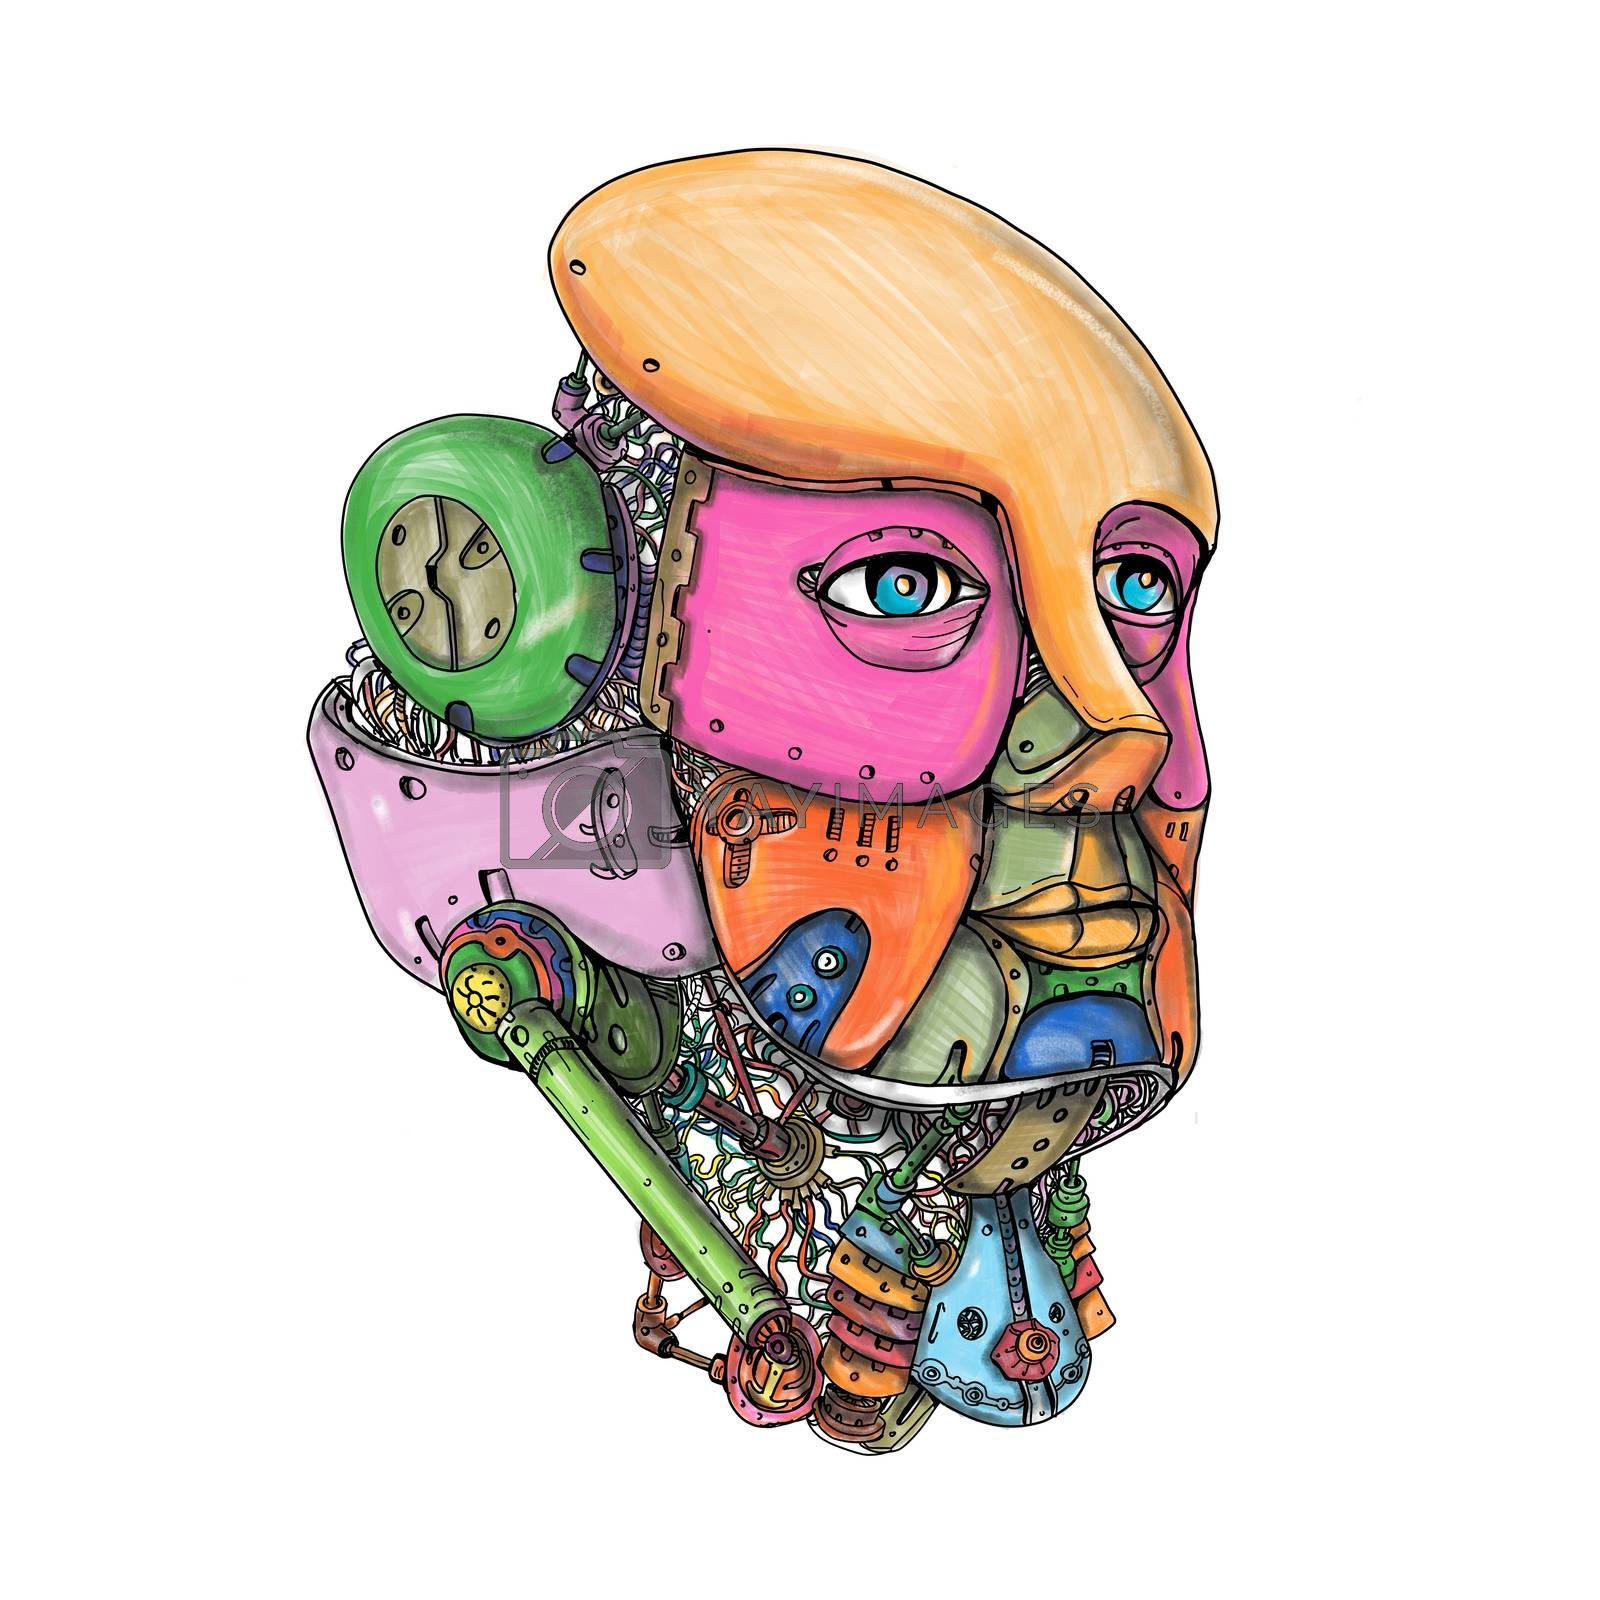 Tattoo style illustration of a female humanoid android robot AI Artificial Intelligence head looking forward on isolated background.